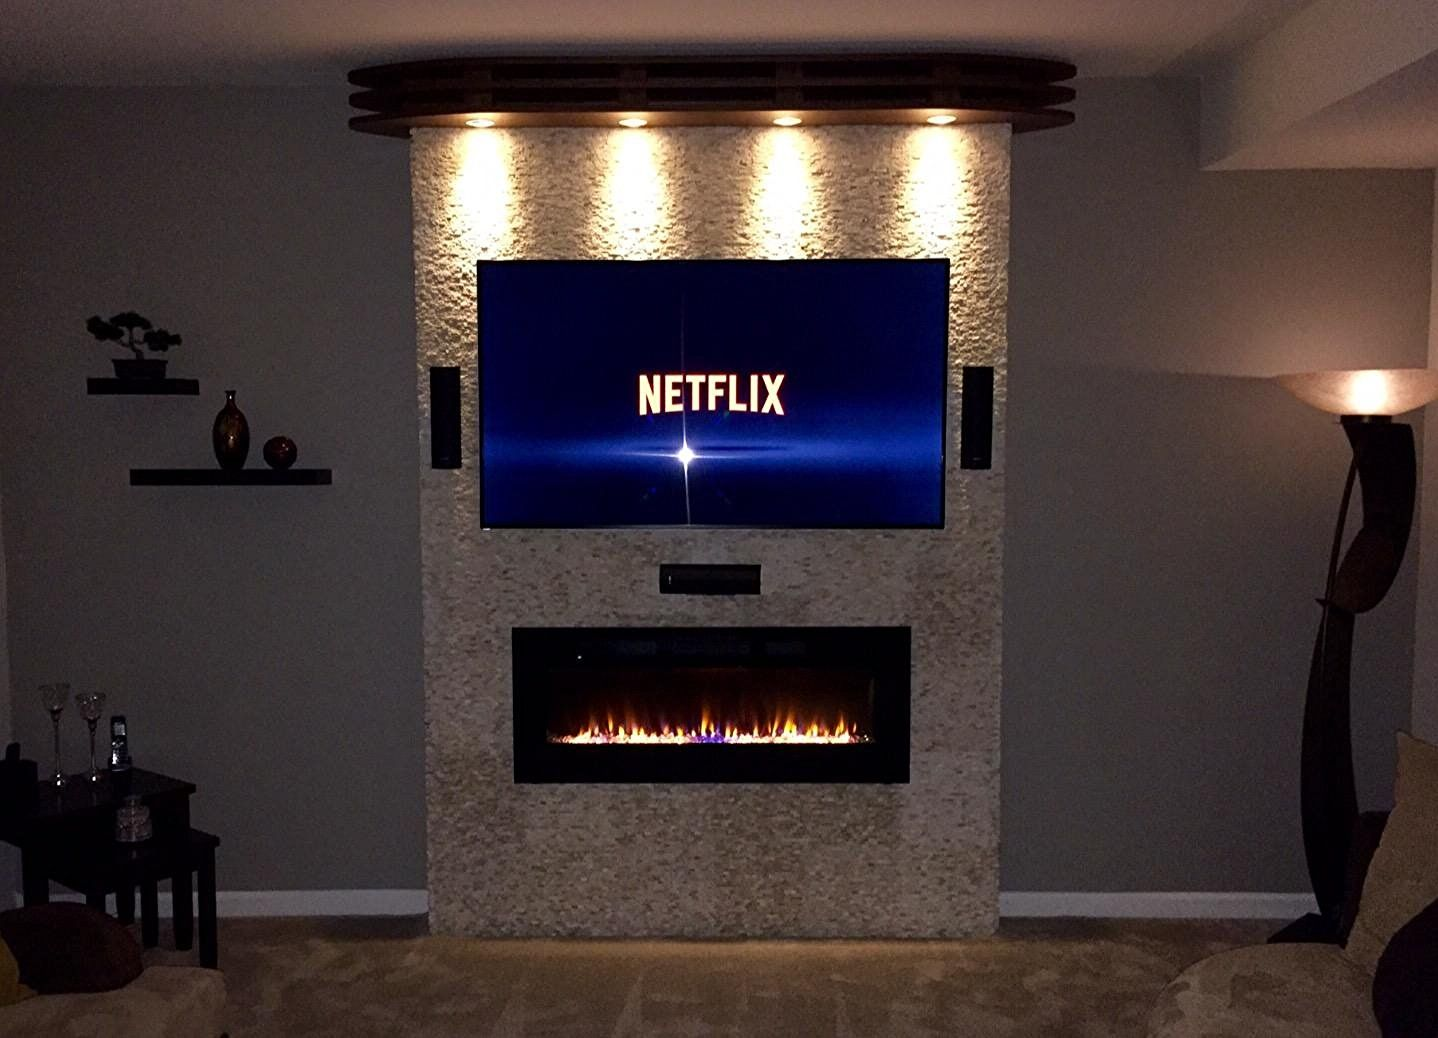 Amazon Com Napoleon Efl50h Linear Wall Mount Electric Fireplace 50 Inch Home Kitc Basement Fireplace Wall Mount Electric Fireplace Electric Fireplace Wall